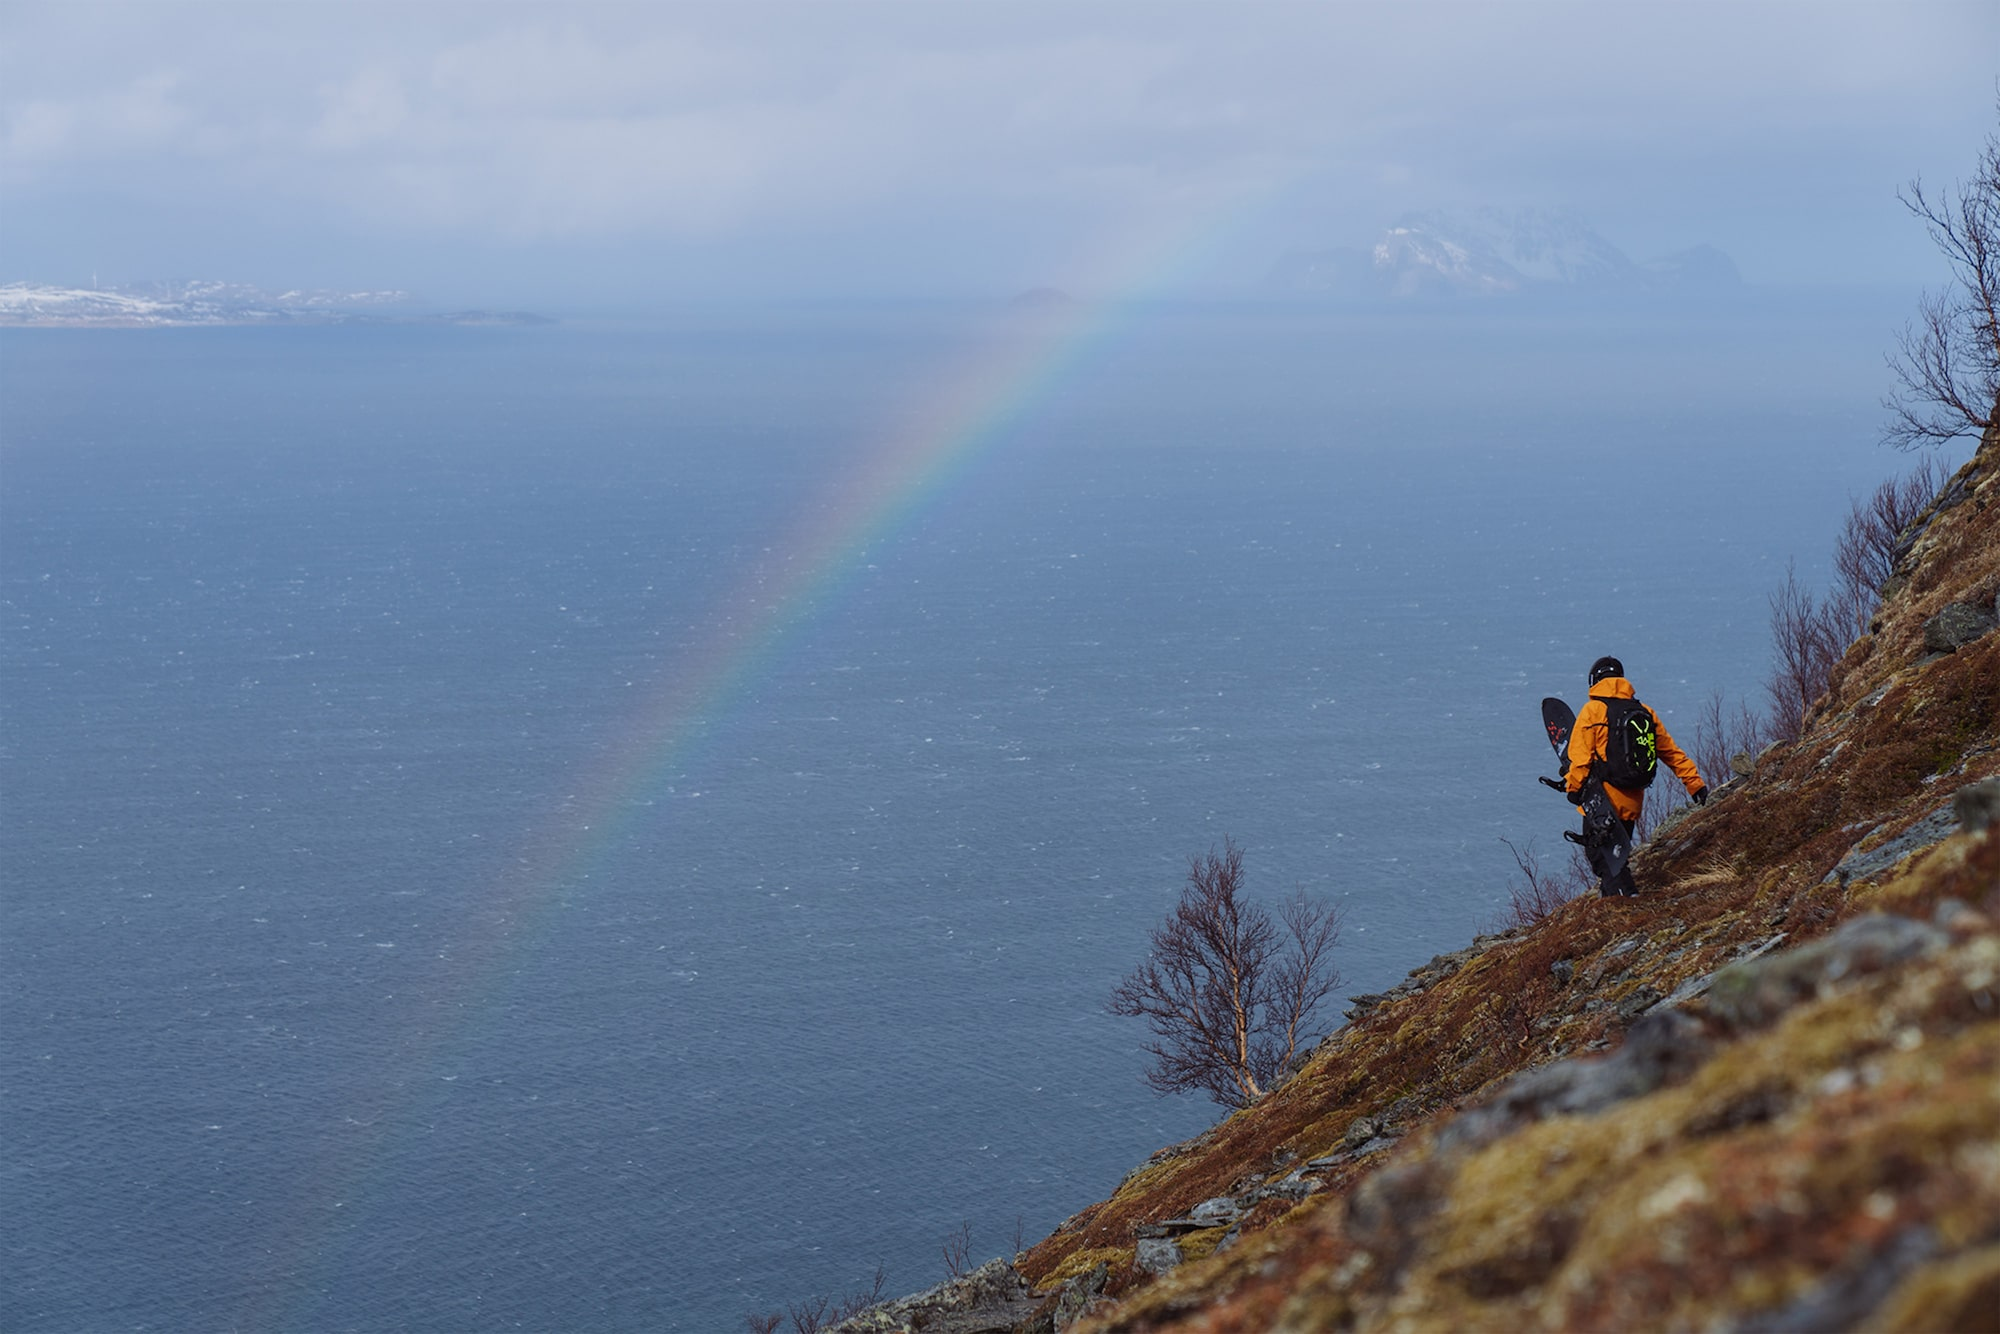 jaakko posti sony alpha 7RM3 man stands on a remote mountainside gazing across the sea with a rainbow visible across the frame